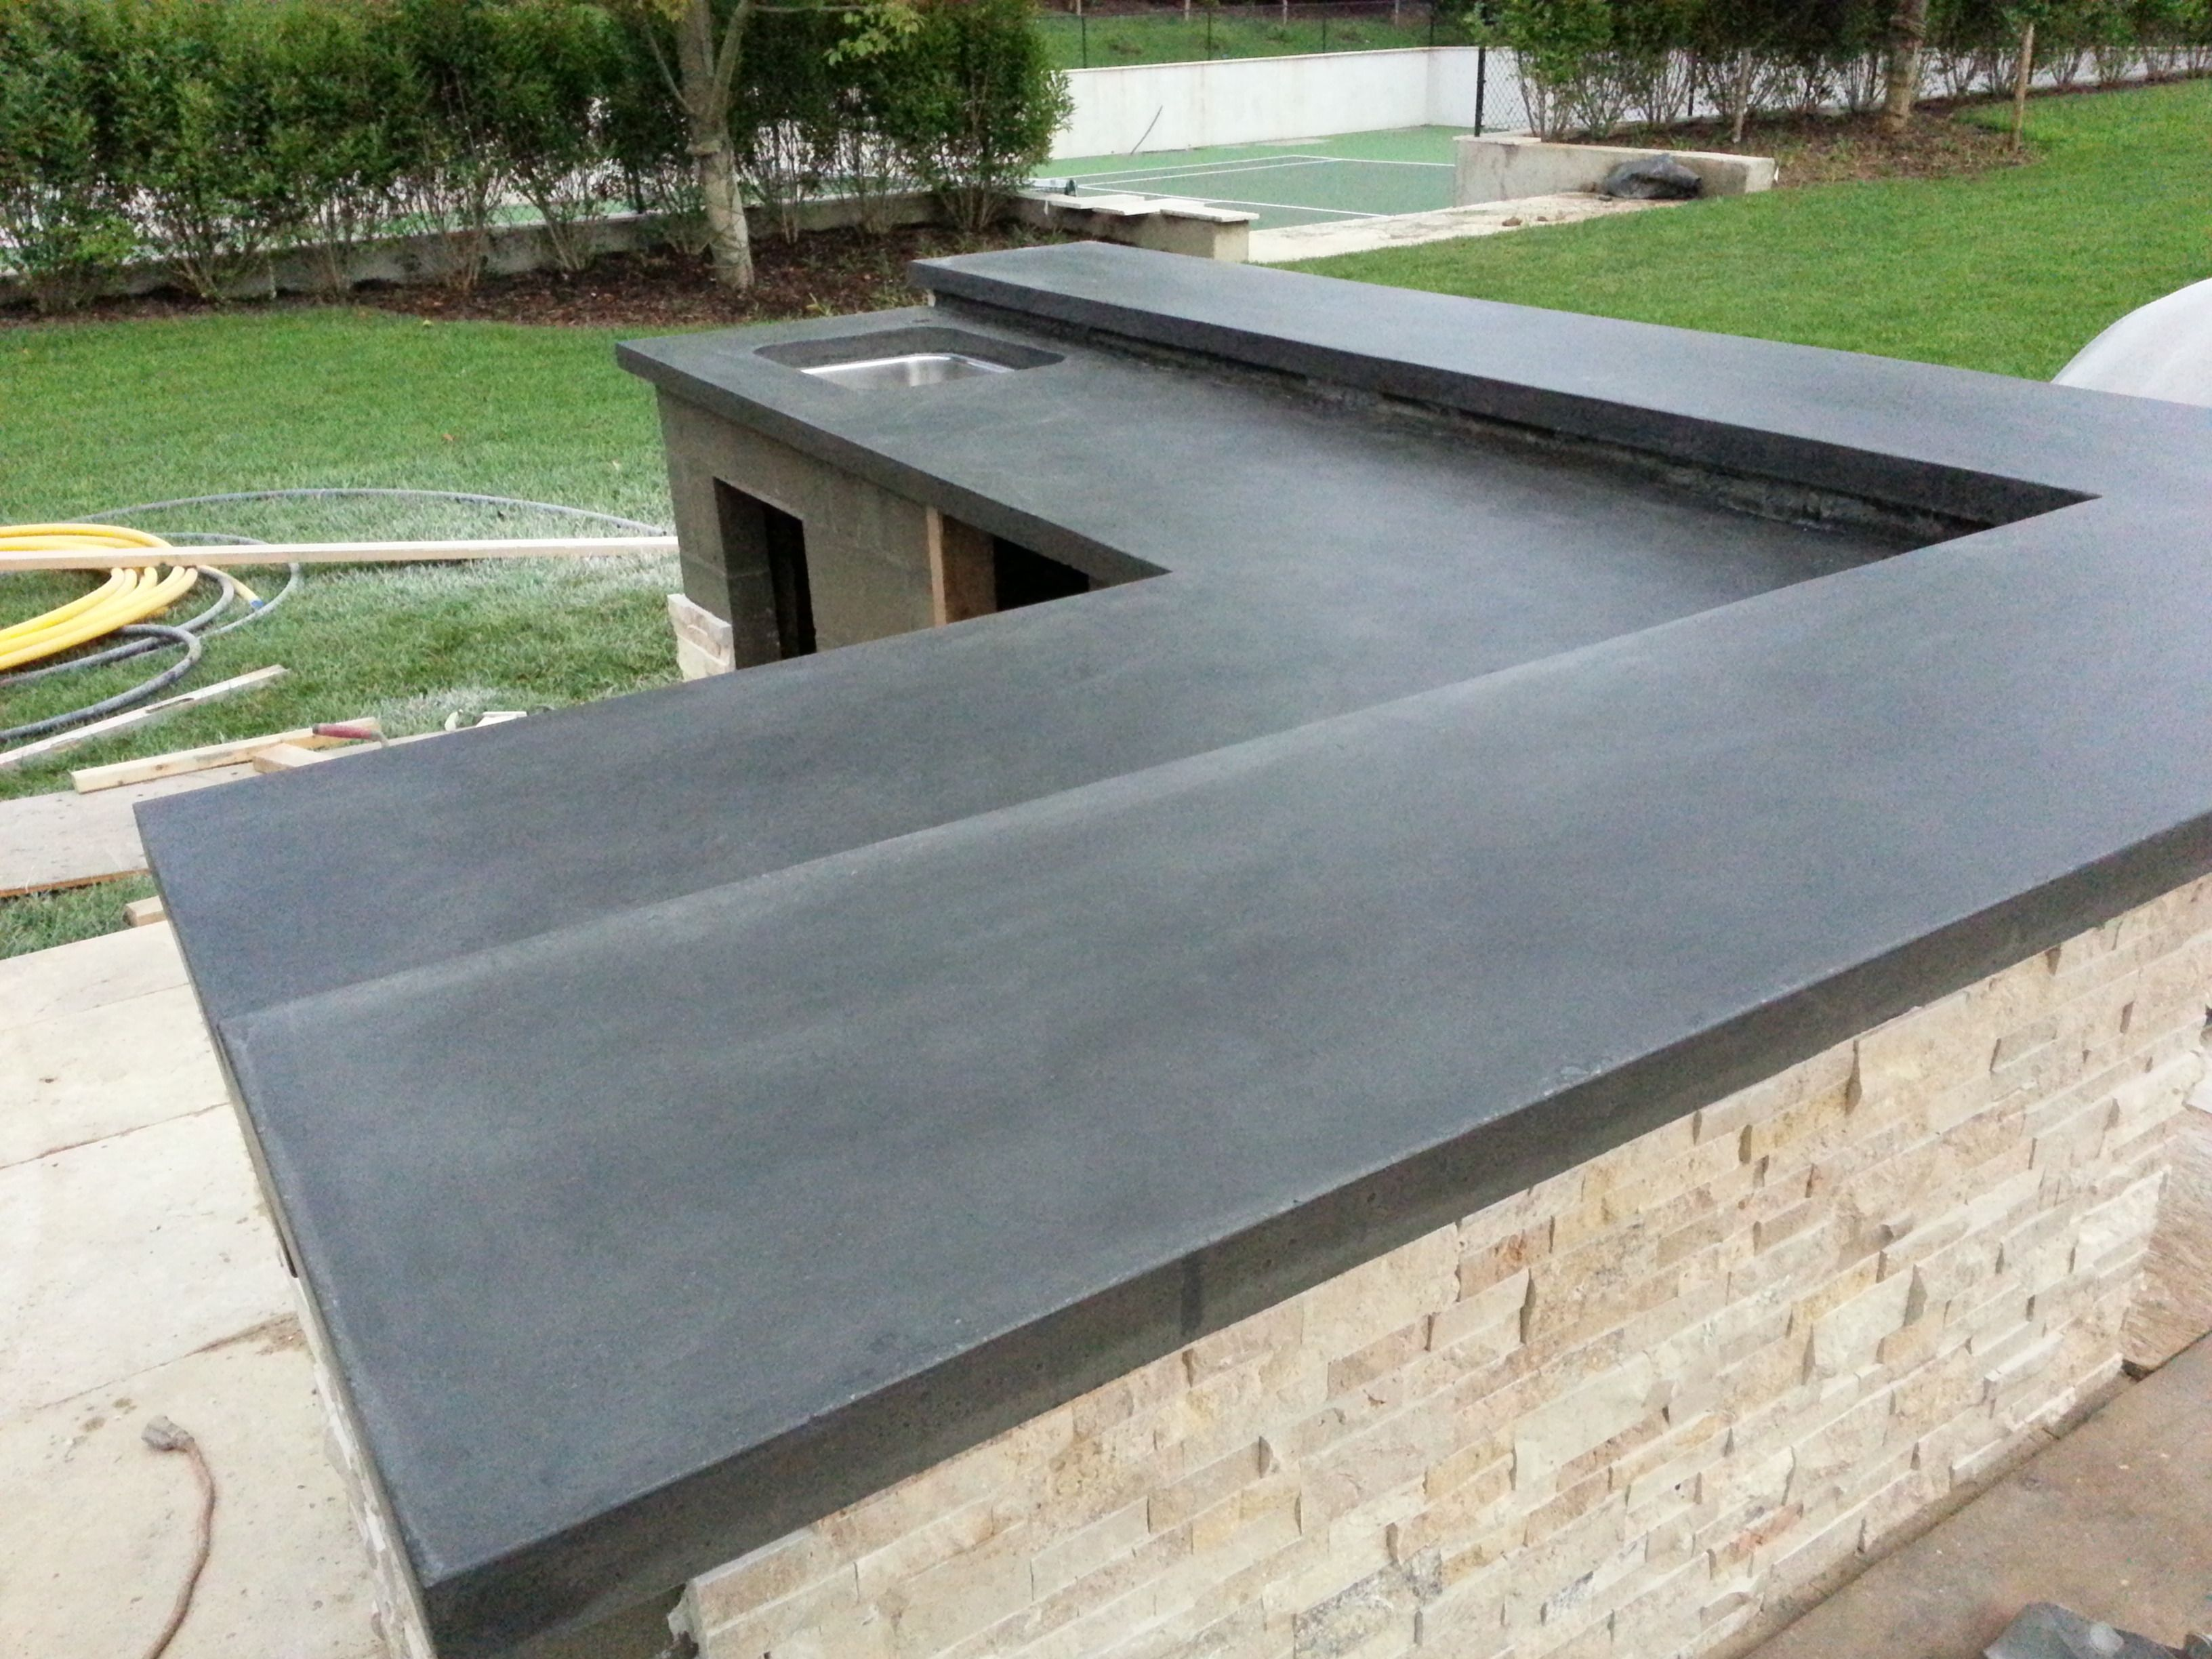 Concrete Countertop Manufacturers Best Counter Surface For Outdoor Kitchen Review Home Co